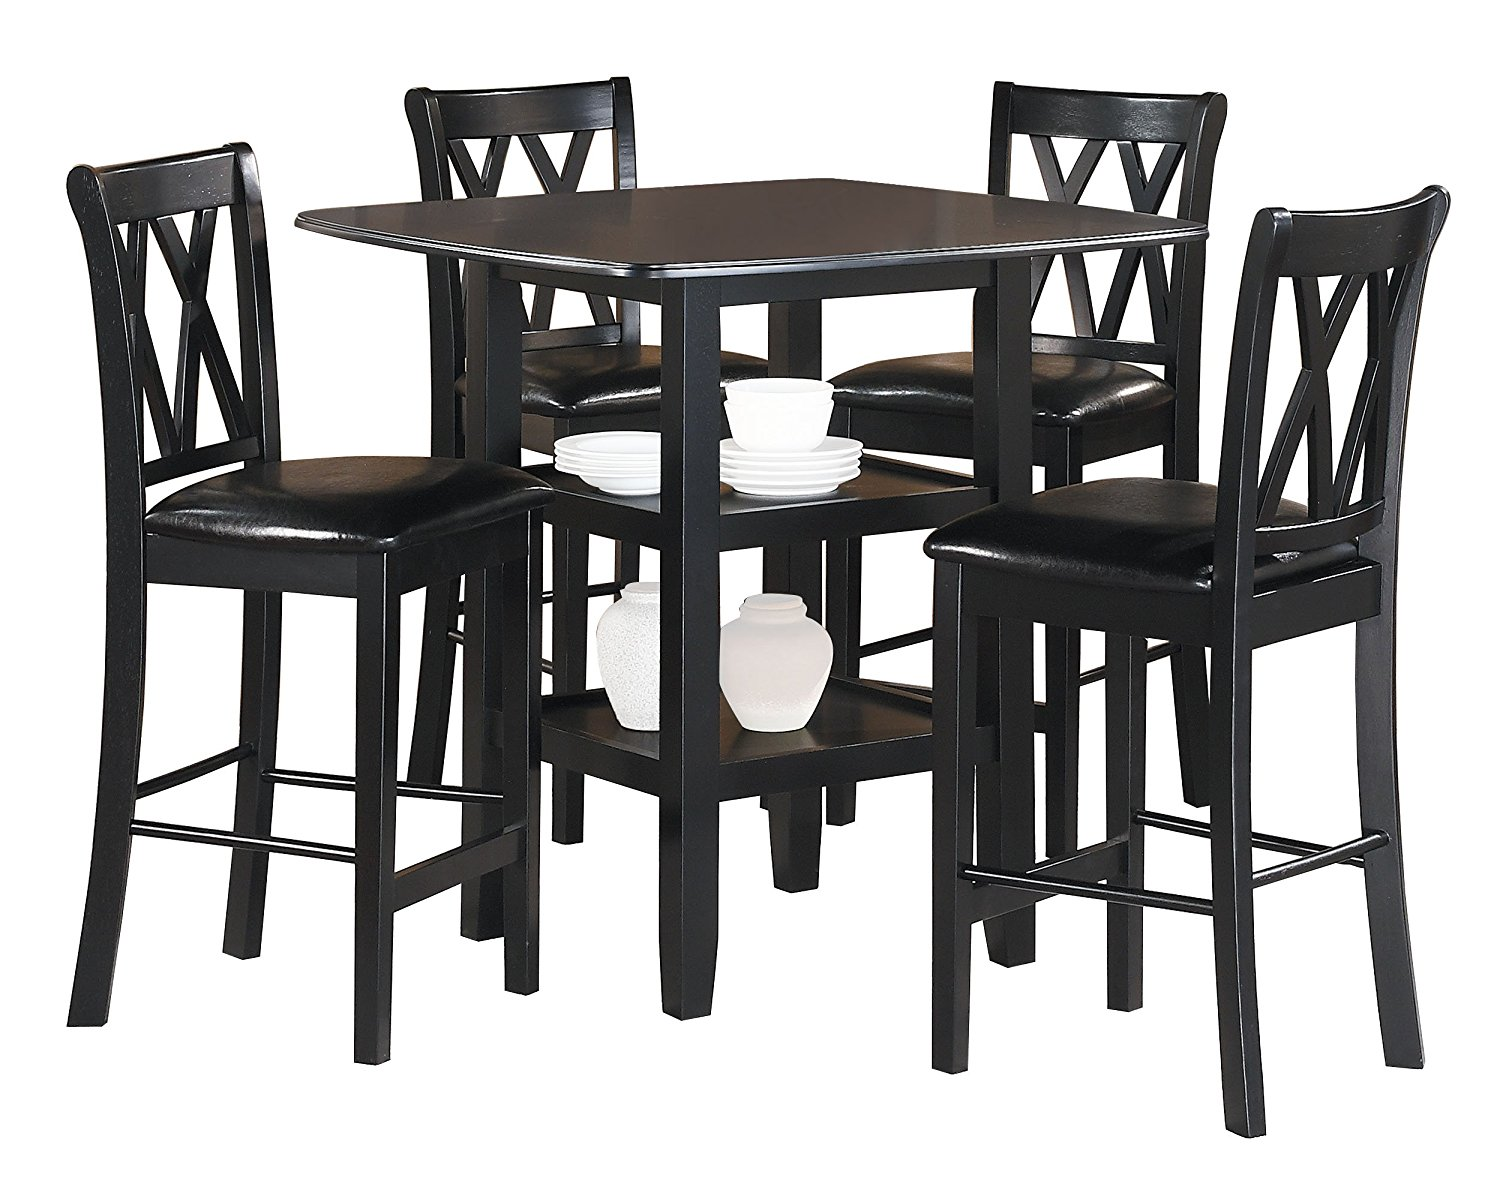 Modern Table And Chairs Homelegance Norman 5 Piece Counter Height Table Set In Black 2514bk 36